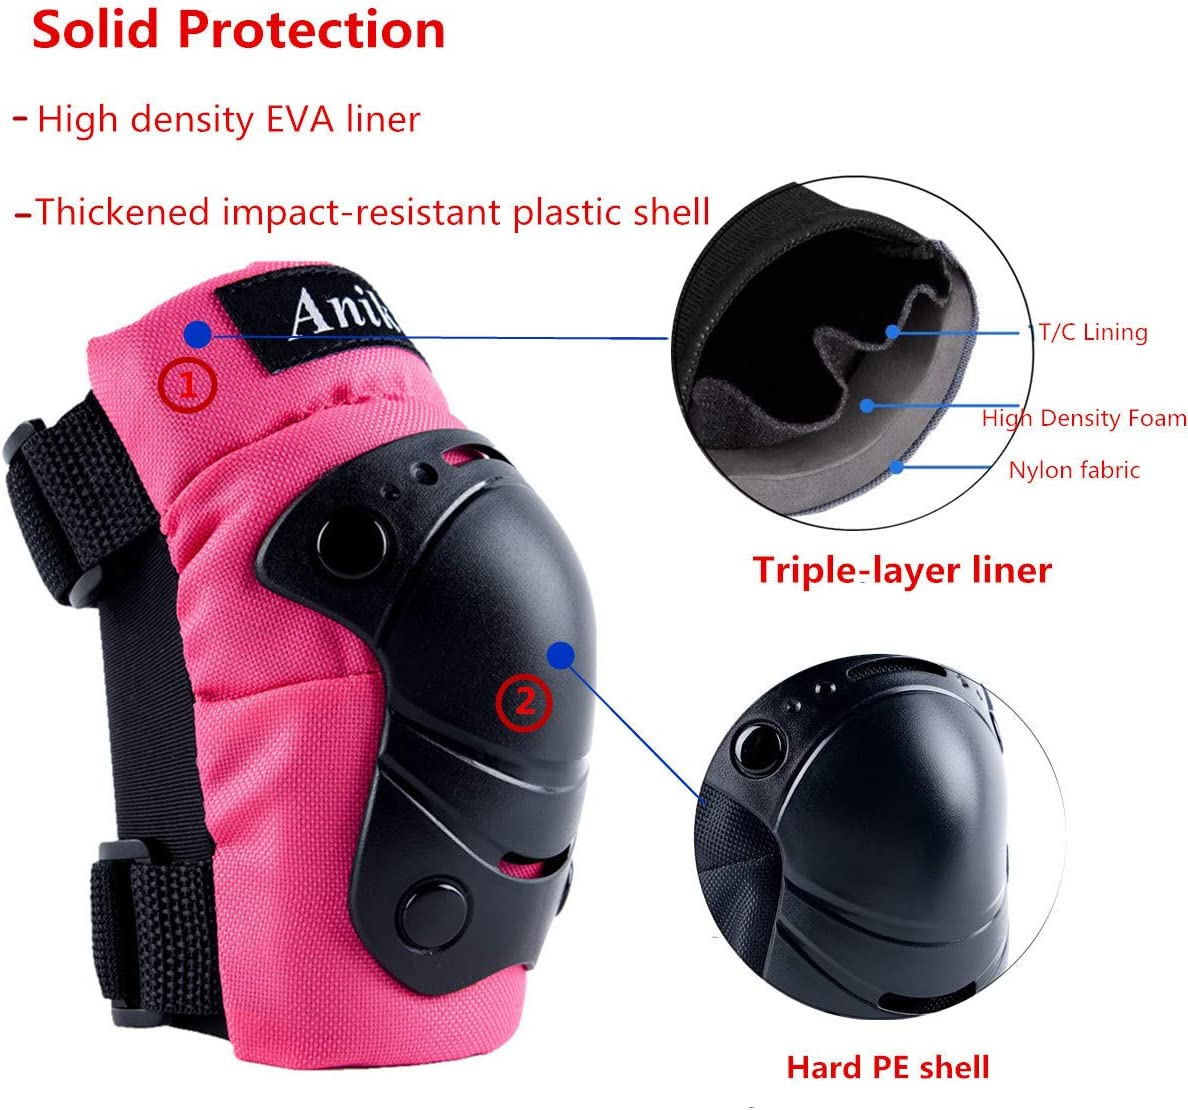 Kids Protective Gear, Knee Pads Elbow Pads Wrist Guards 3 in 1 Set for Inline Roller Skating Biking Cycling Sports Safe Guard : Sports & Outdoors